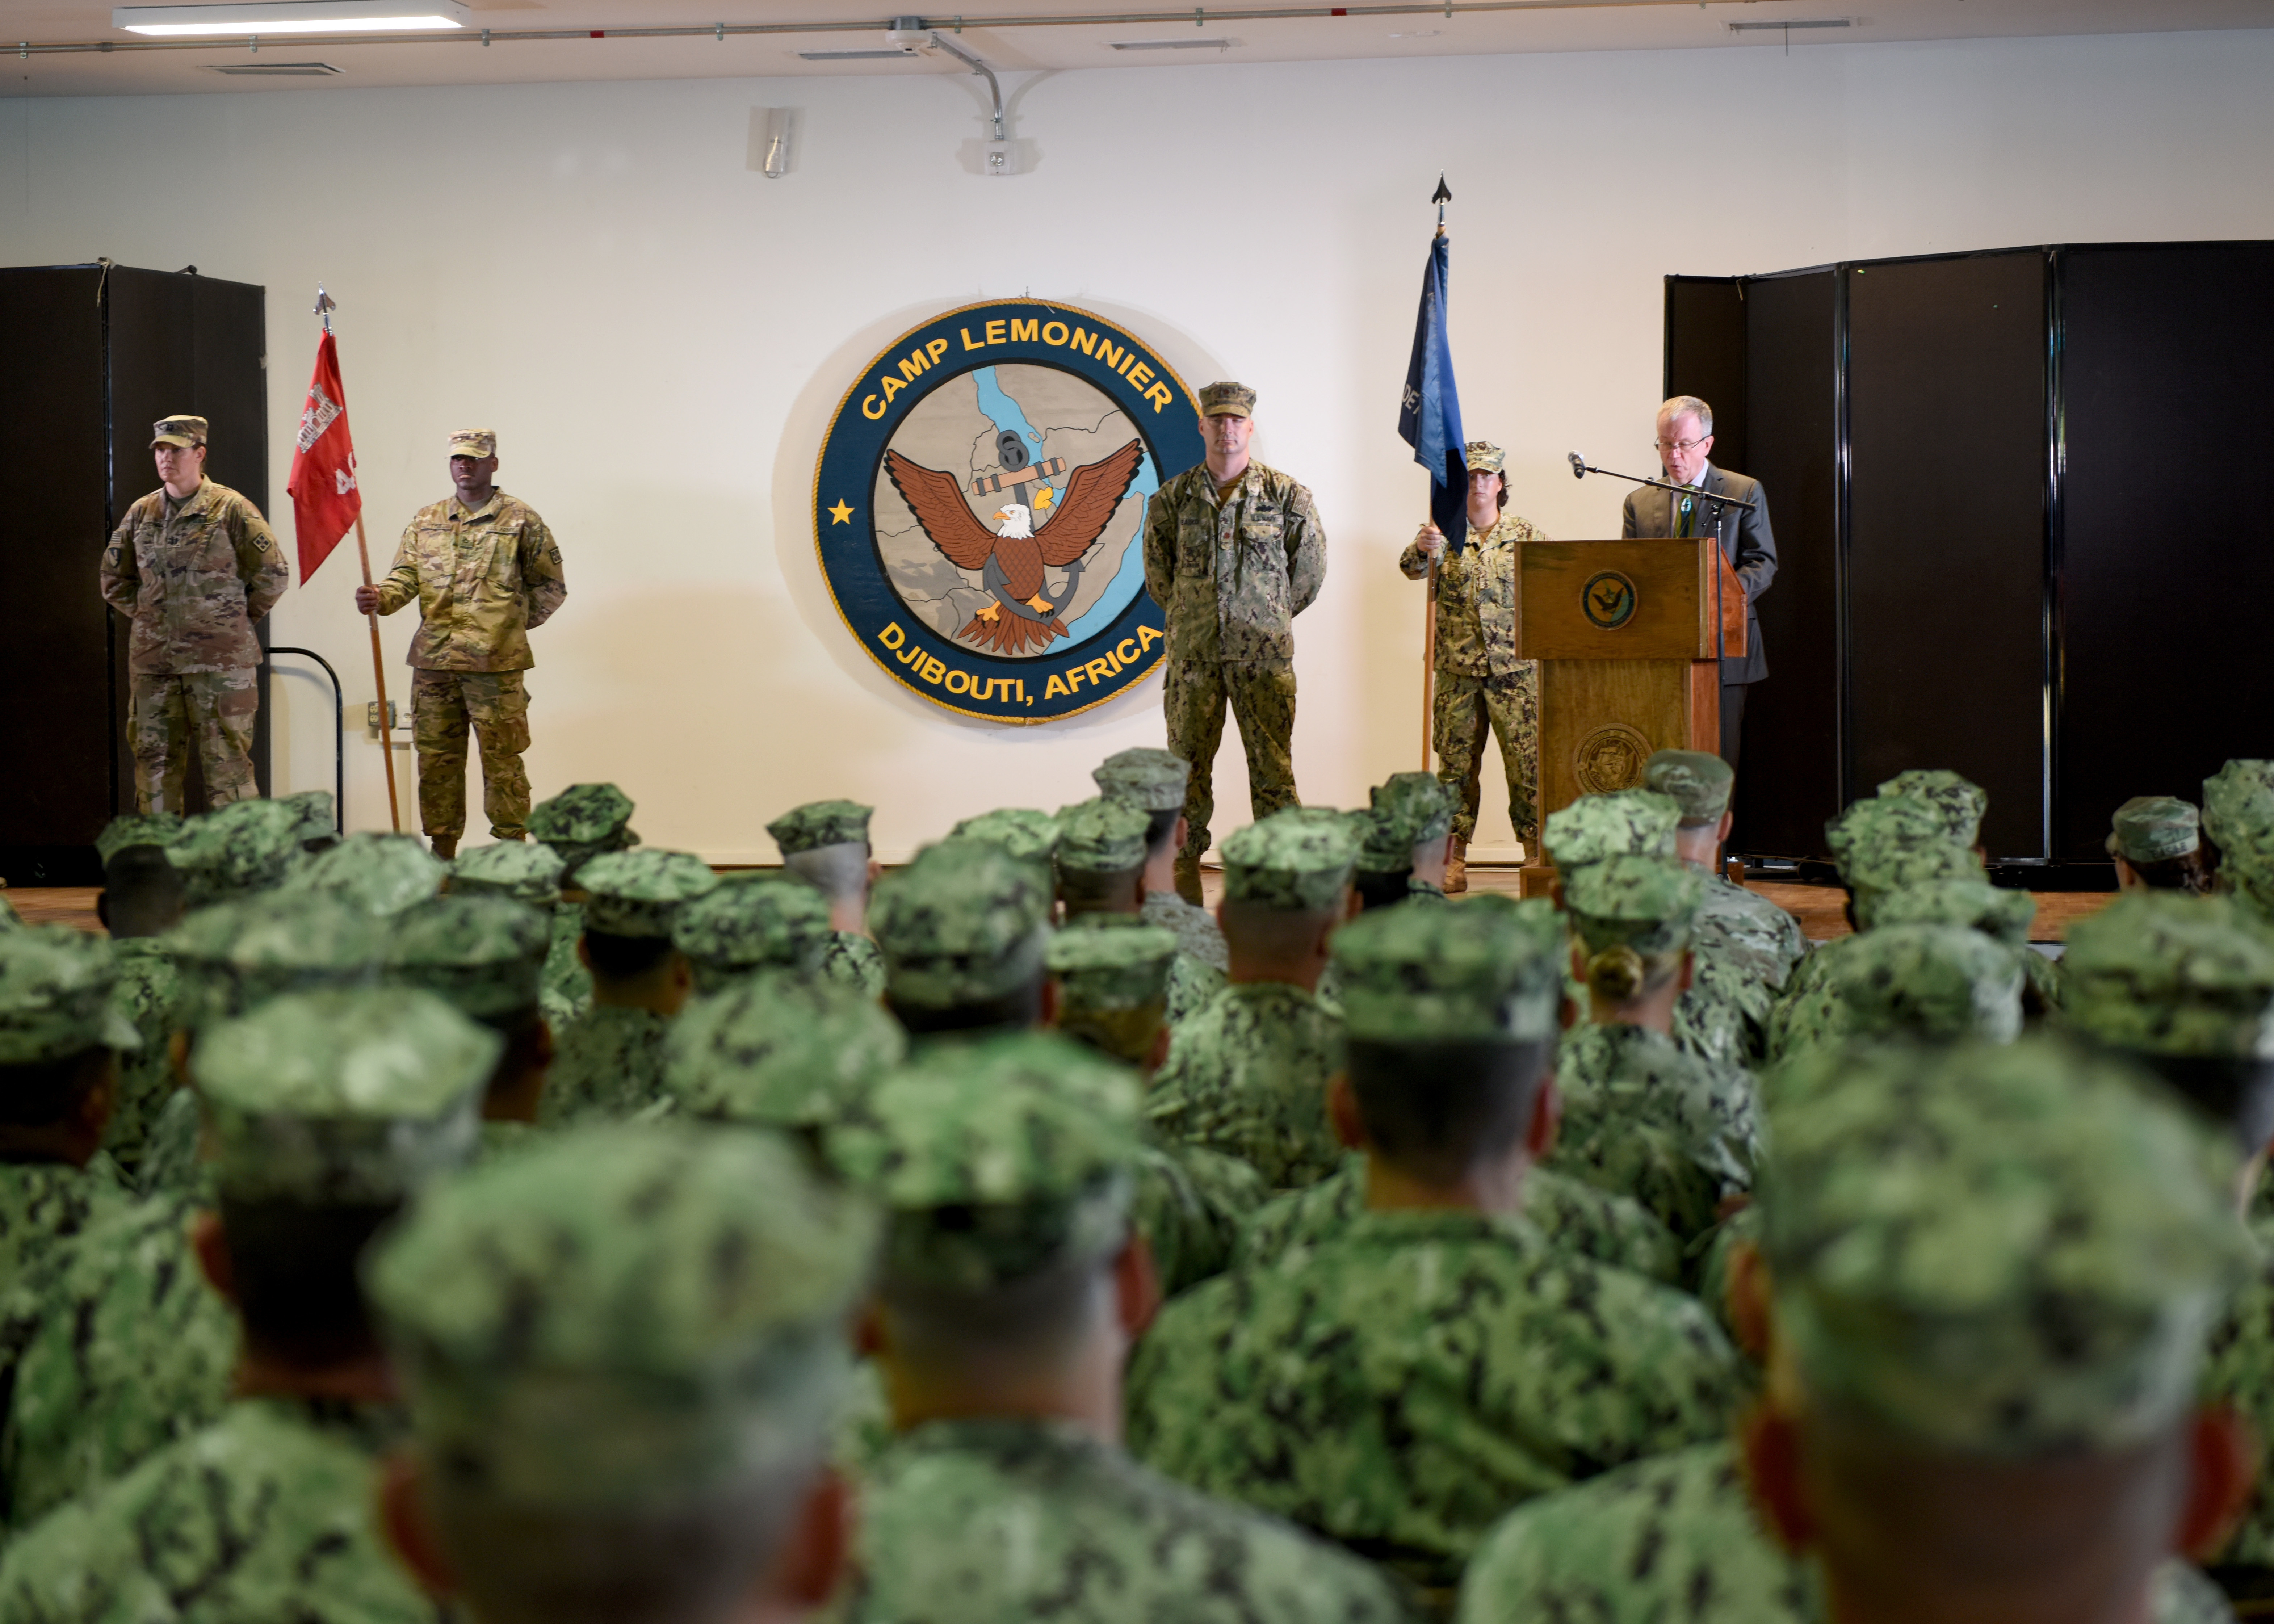 U.S. Ambassador to Djibouti Larry Andre', gives a speech during a transfer-of-authority ceremony at Camp Lemonnier, Djibouti, Feb. 11, 2019. The Naval Mobile Construction Battalion 1, assigned to Combined Joint Task Force-Horn of Africa (CJTF-HOA), transferred authority of building and improving facilities on base and in the combined joint operations area and area of interest to the U.S. Army 465th Engineer Company, 926th Engineer Battalion, 926th Engineer Brigade, 412th Theater Engineer Command, based in Birmingham, Alabama, assigned to CJTF-HOA. (U.S. Air Force photo by Staff Sgt. Franklin R. Ramos)